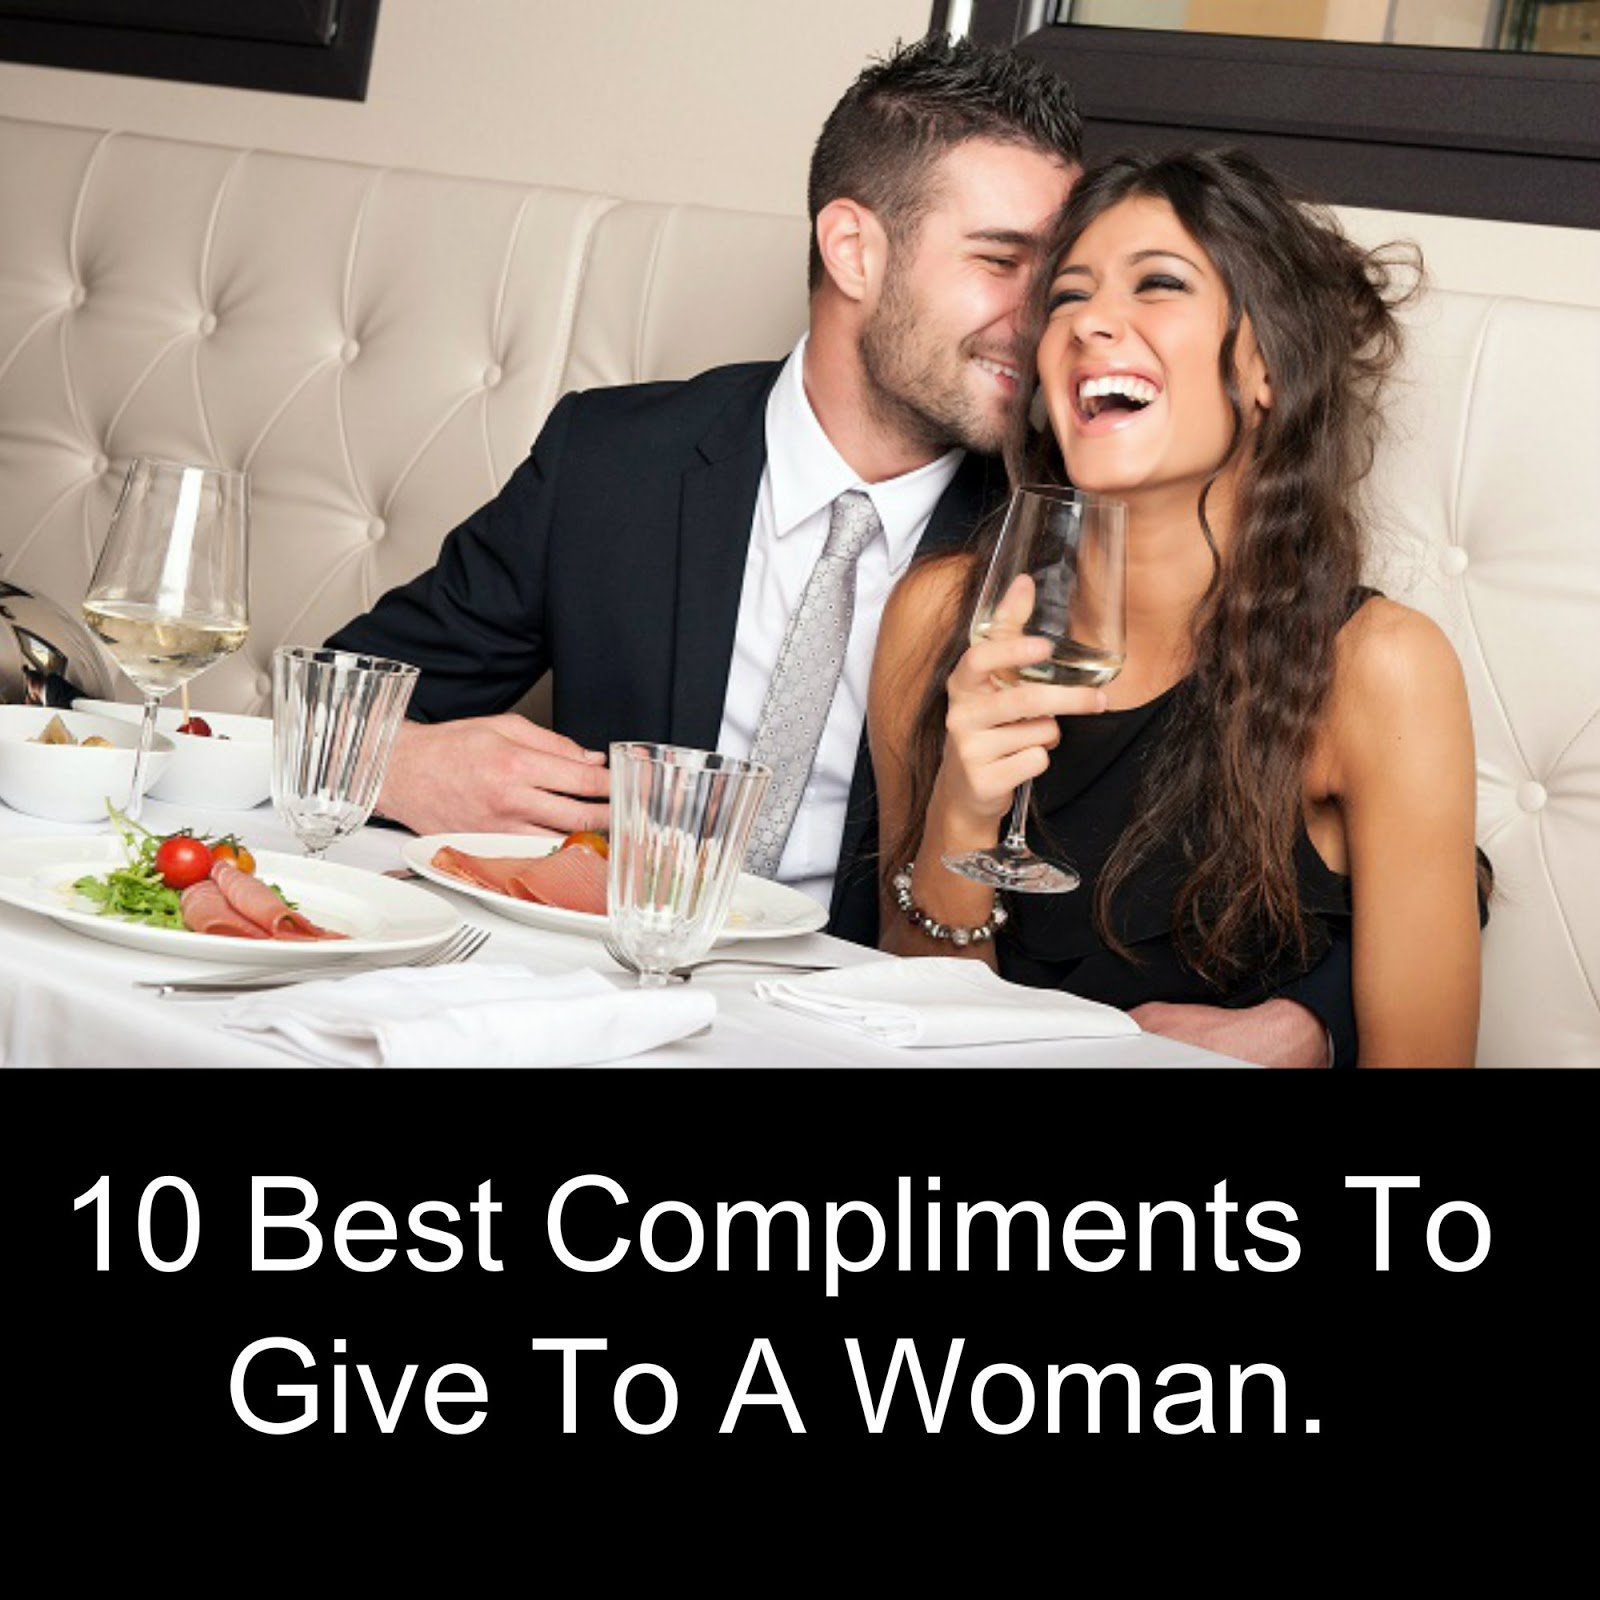 Best Compliments To Give A Woman